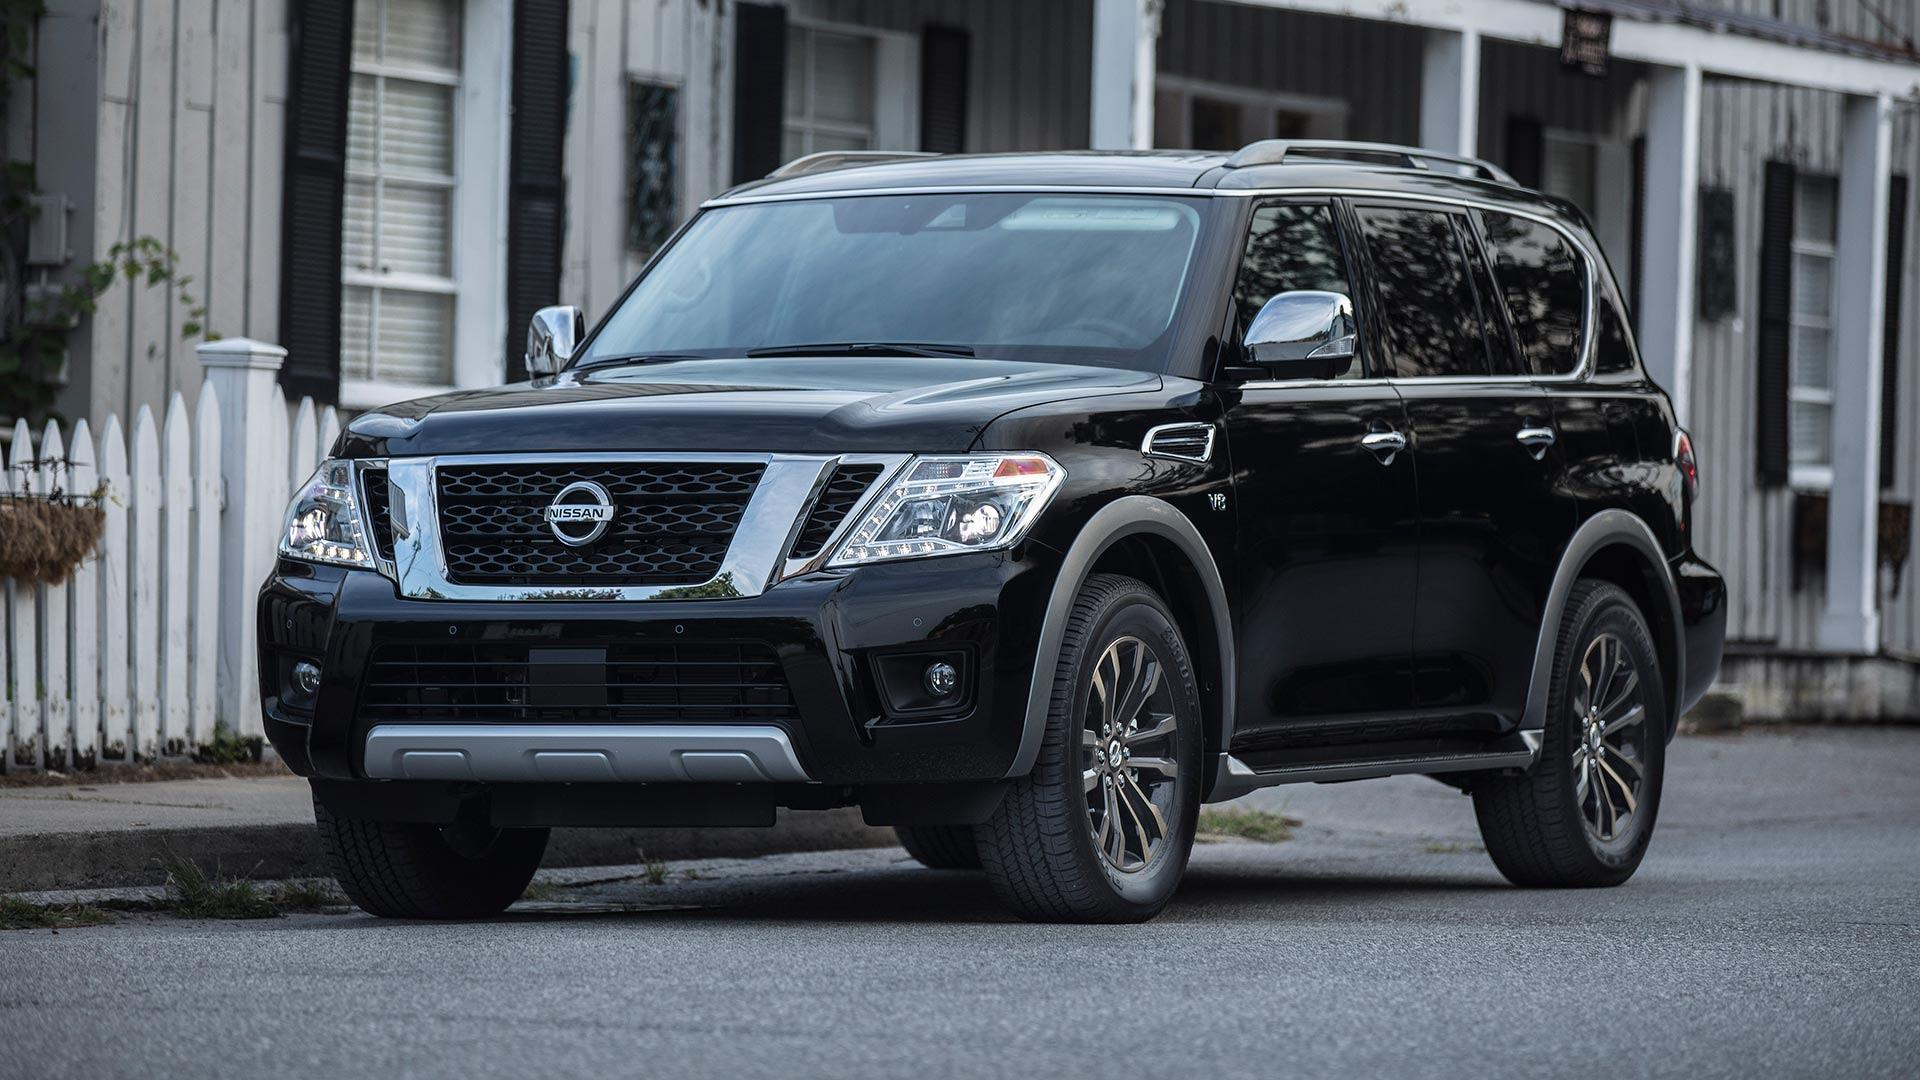 2018 Nissan Armada Gets Pimped With More Technology ...